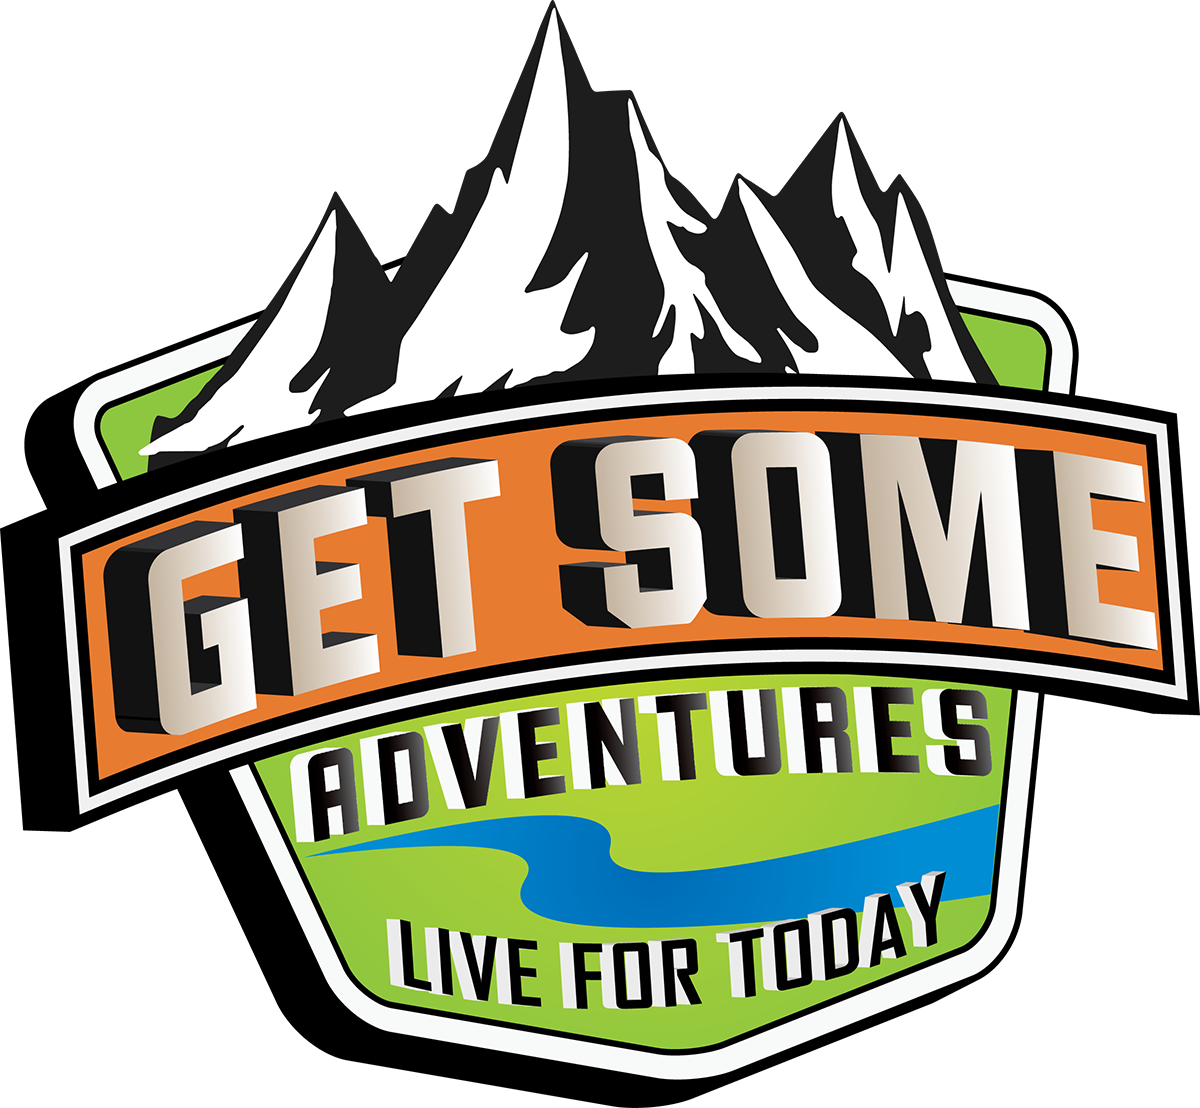 Road trip get some. Outdoors clipart smokey mountain